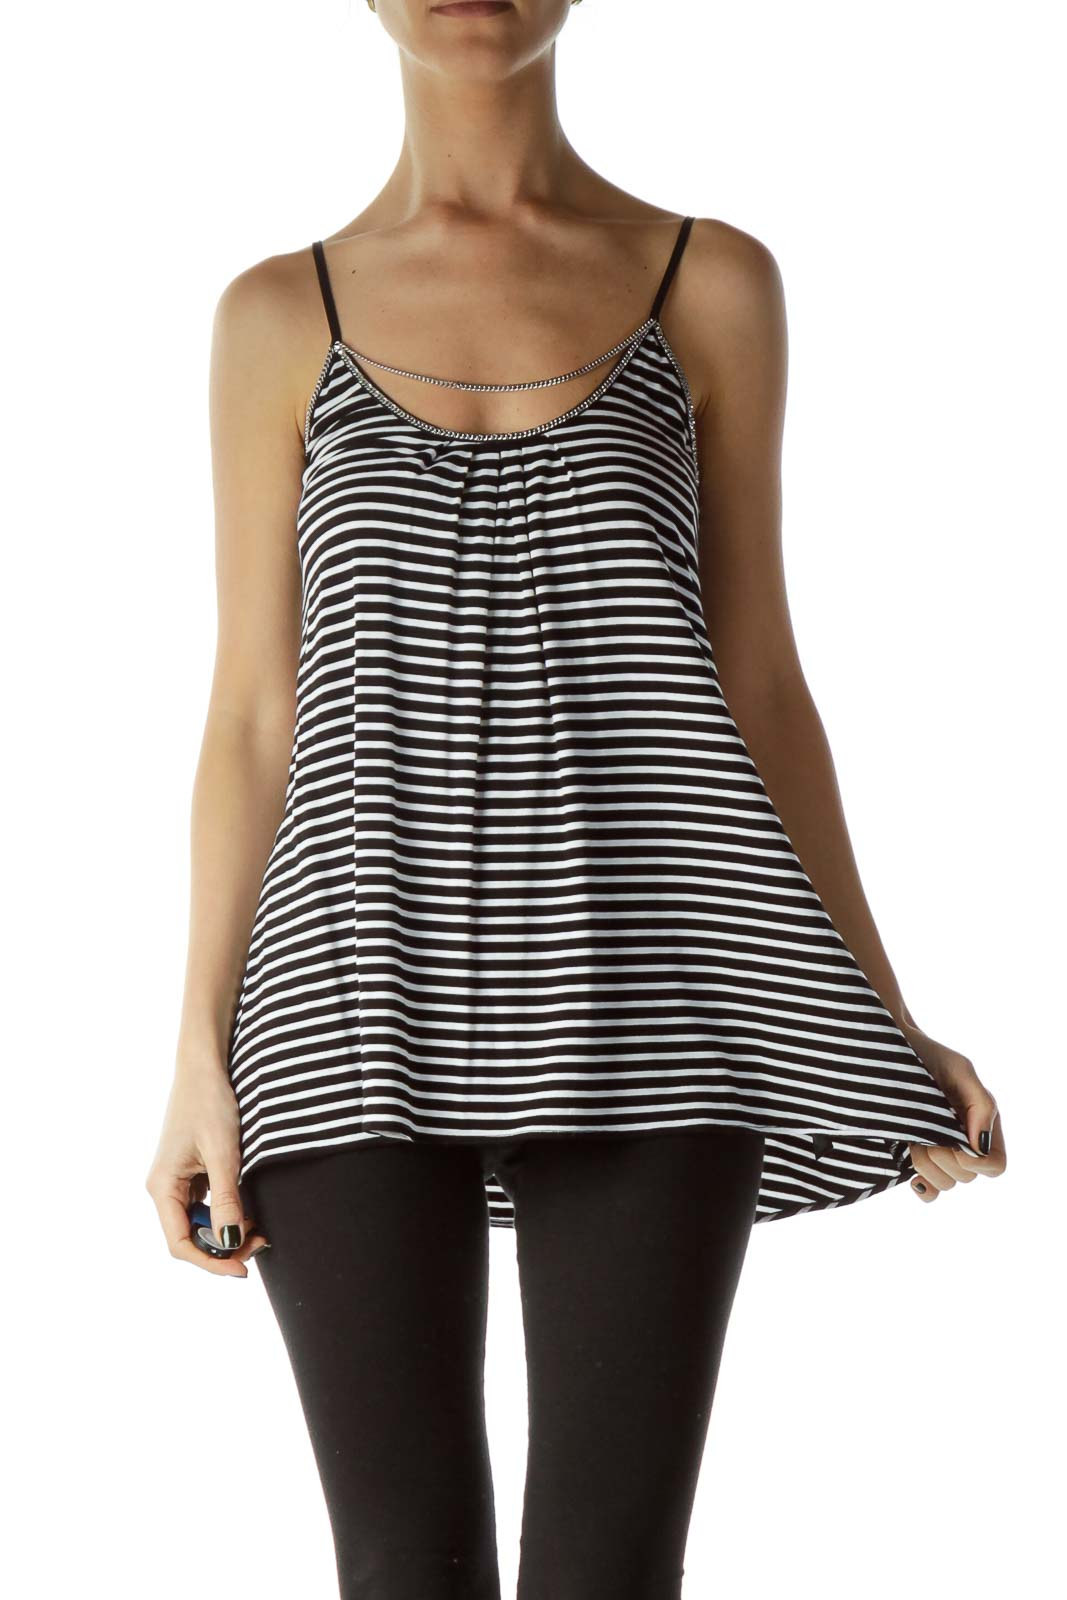 Black White Striped Tank Top with Chain Detail